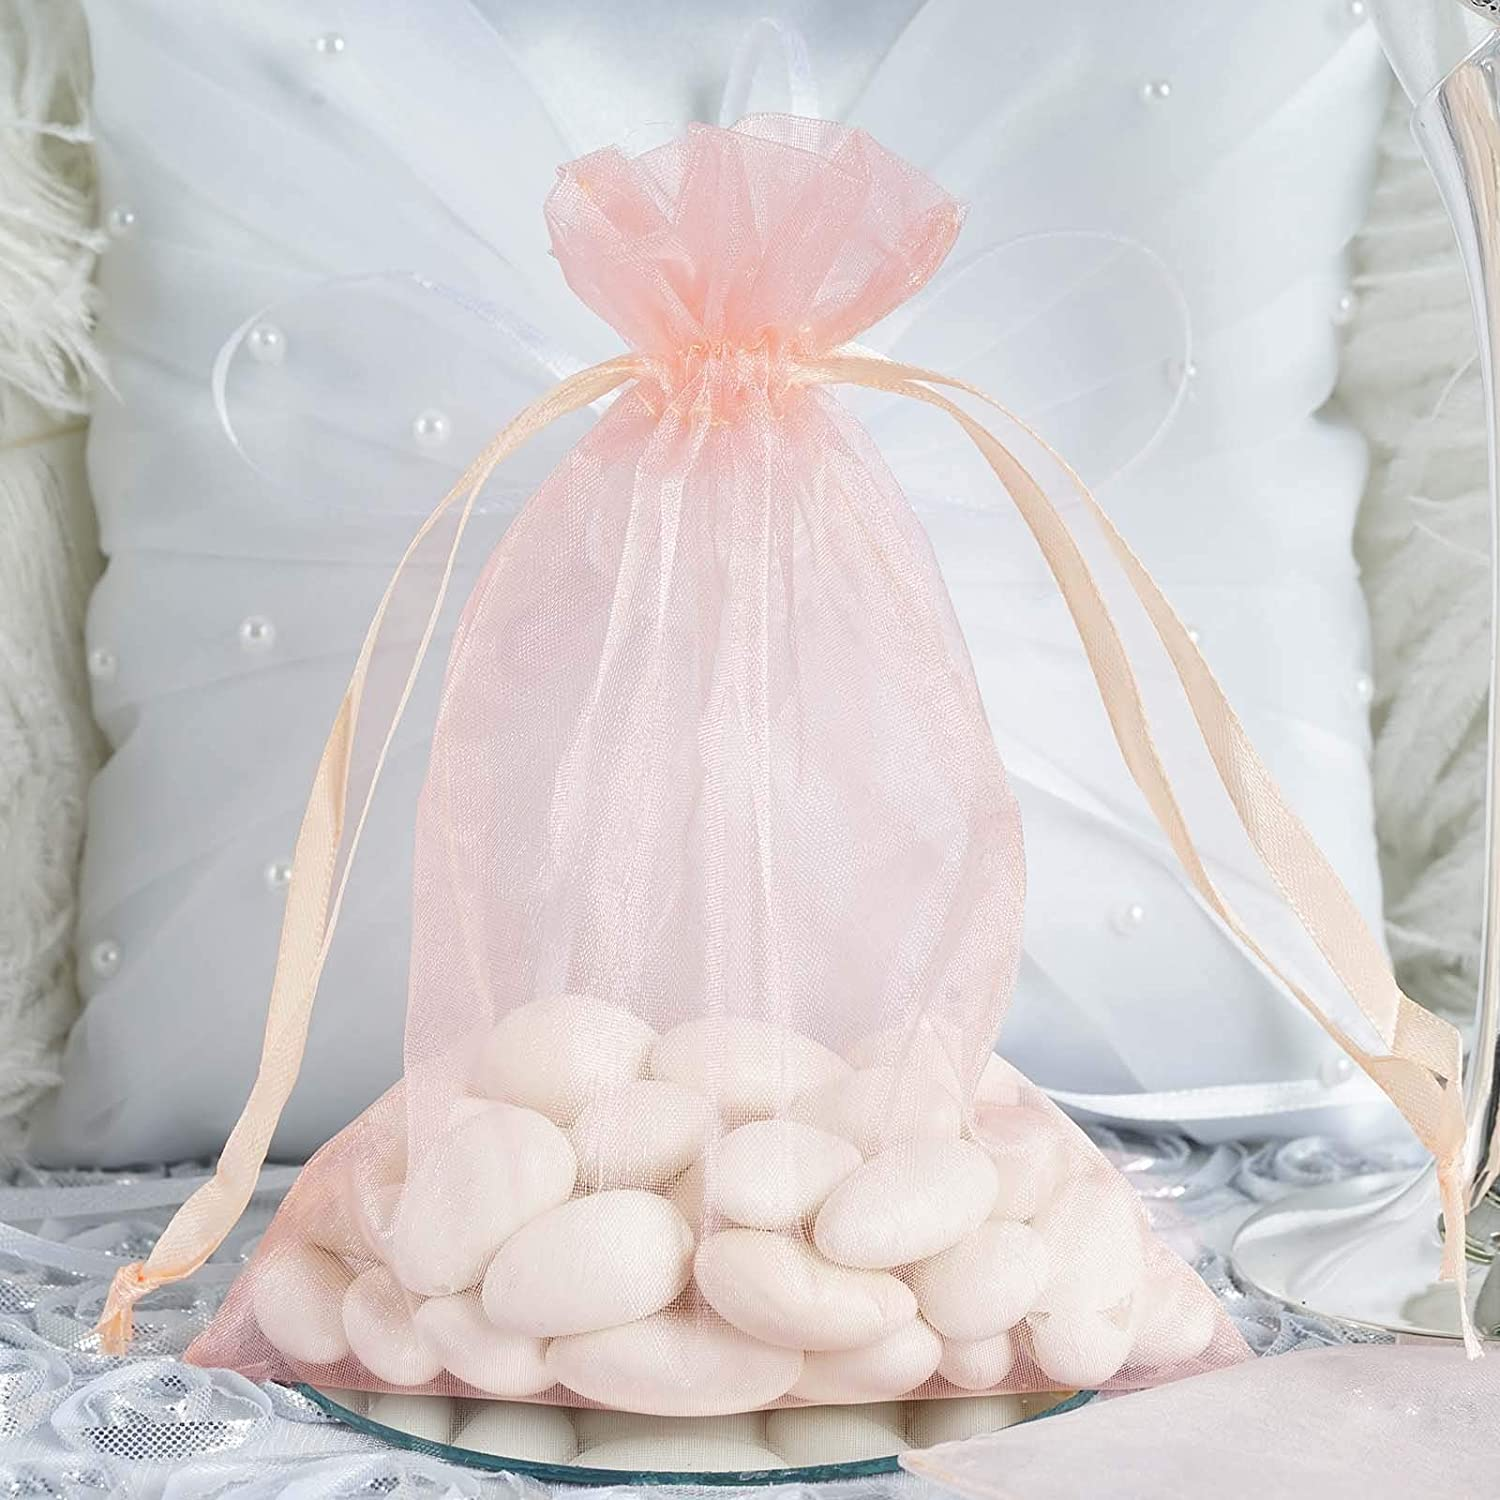 Efavormart 10PCS Blush Organza Gift Bag Drawstring Pouch Wedding Favors Bridal Shower Treat Jewelry Bags - 5